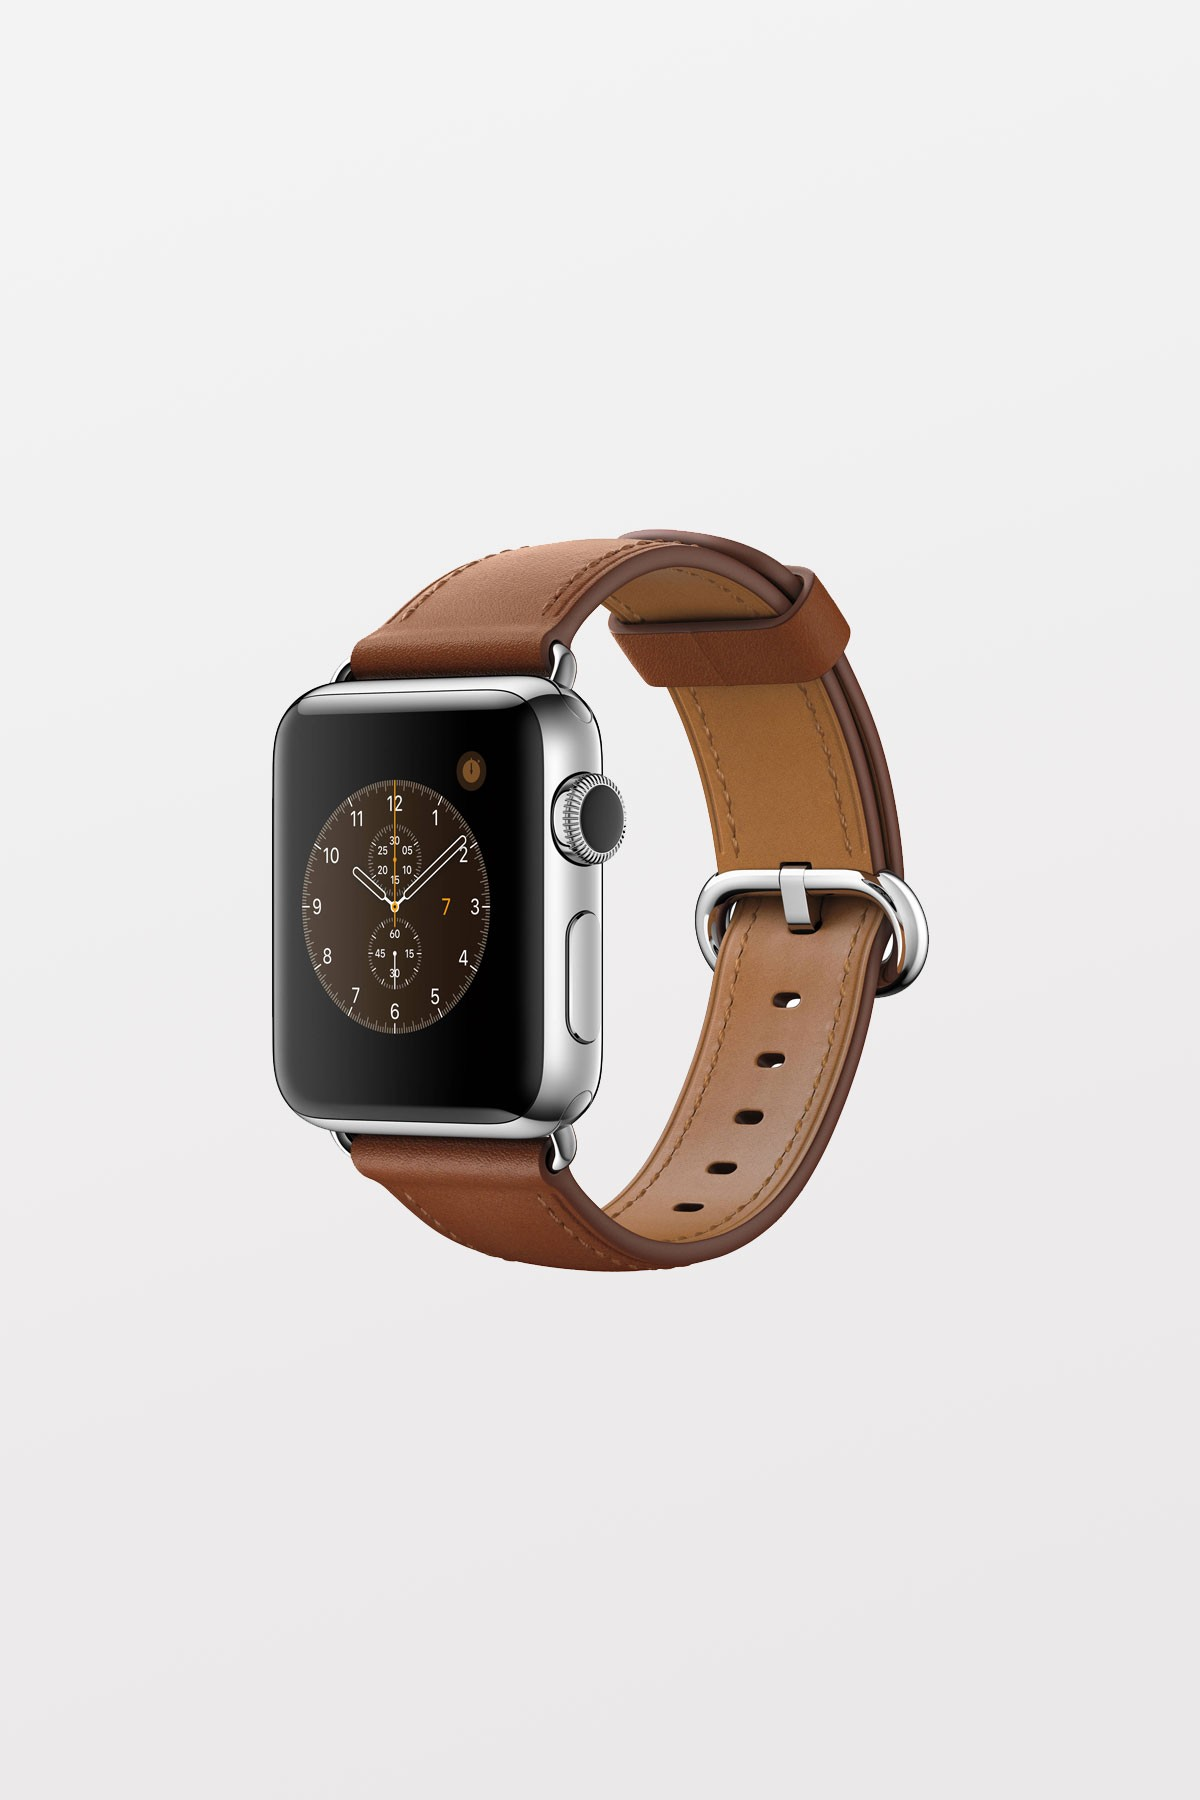 Apple Watch 42mm - Stainless Steel - Saddle Brown Classic Buckle